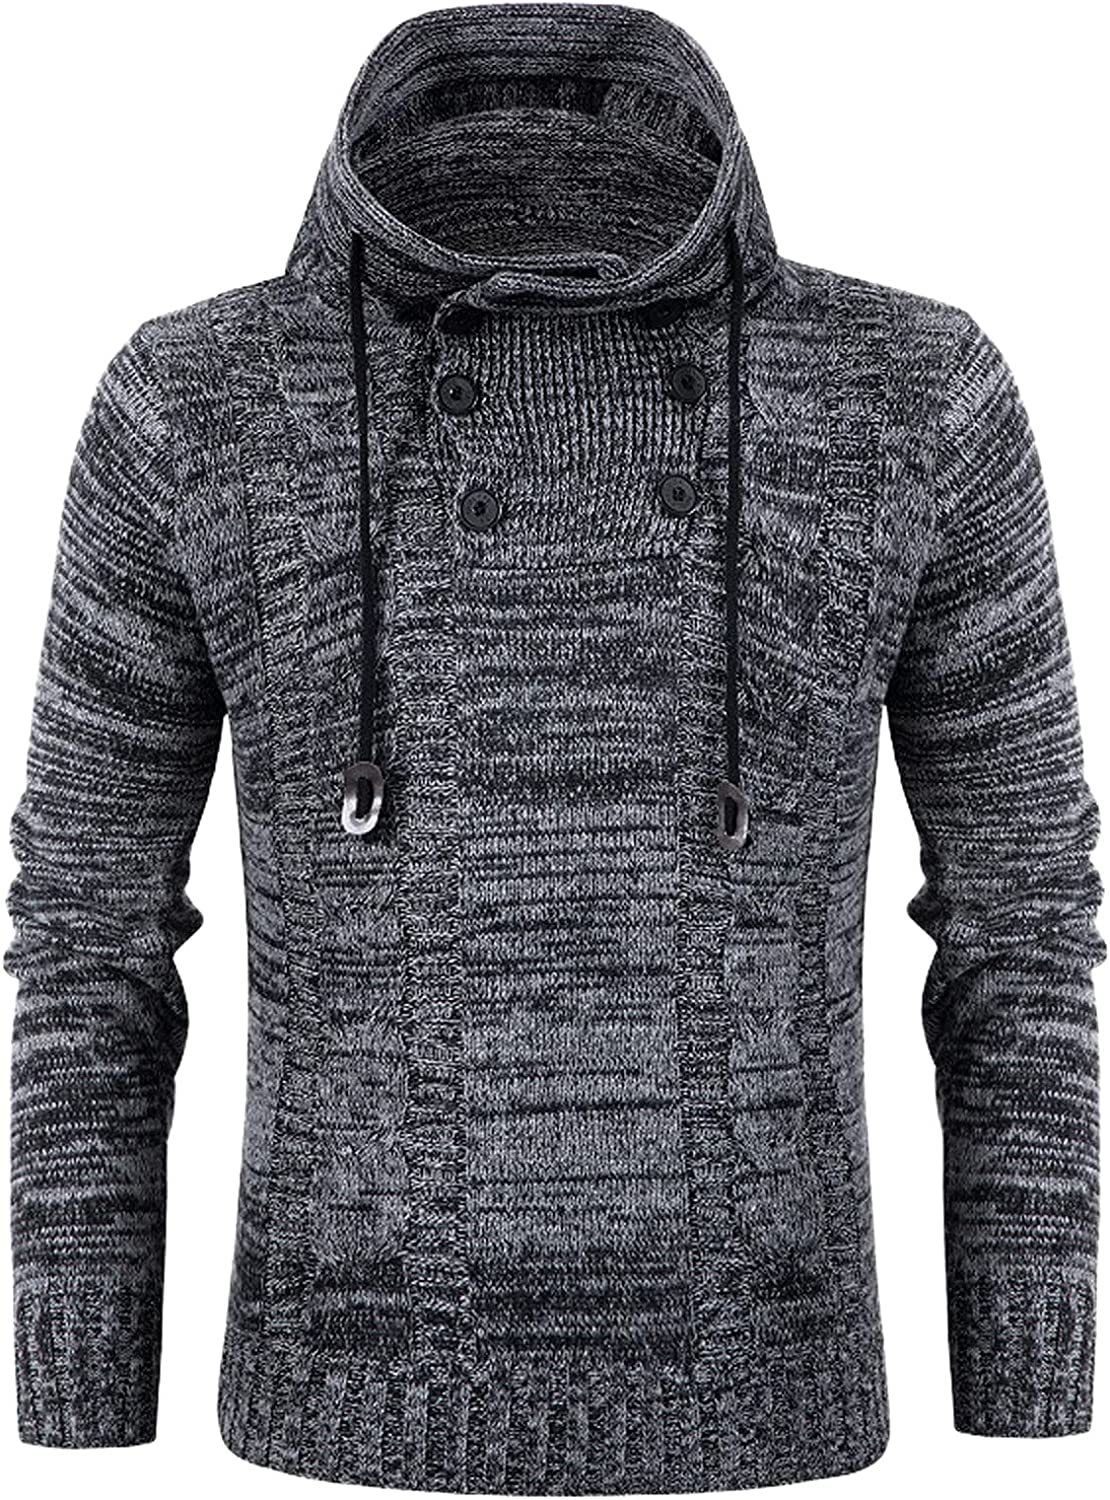 XXBR Knitted Sweaters for Mens, Fall Winter Cowl Neck Pullover Horn Button Turtleneck Cardigan Casual Warm Jumper